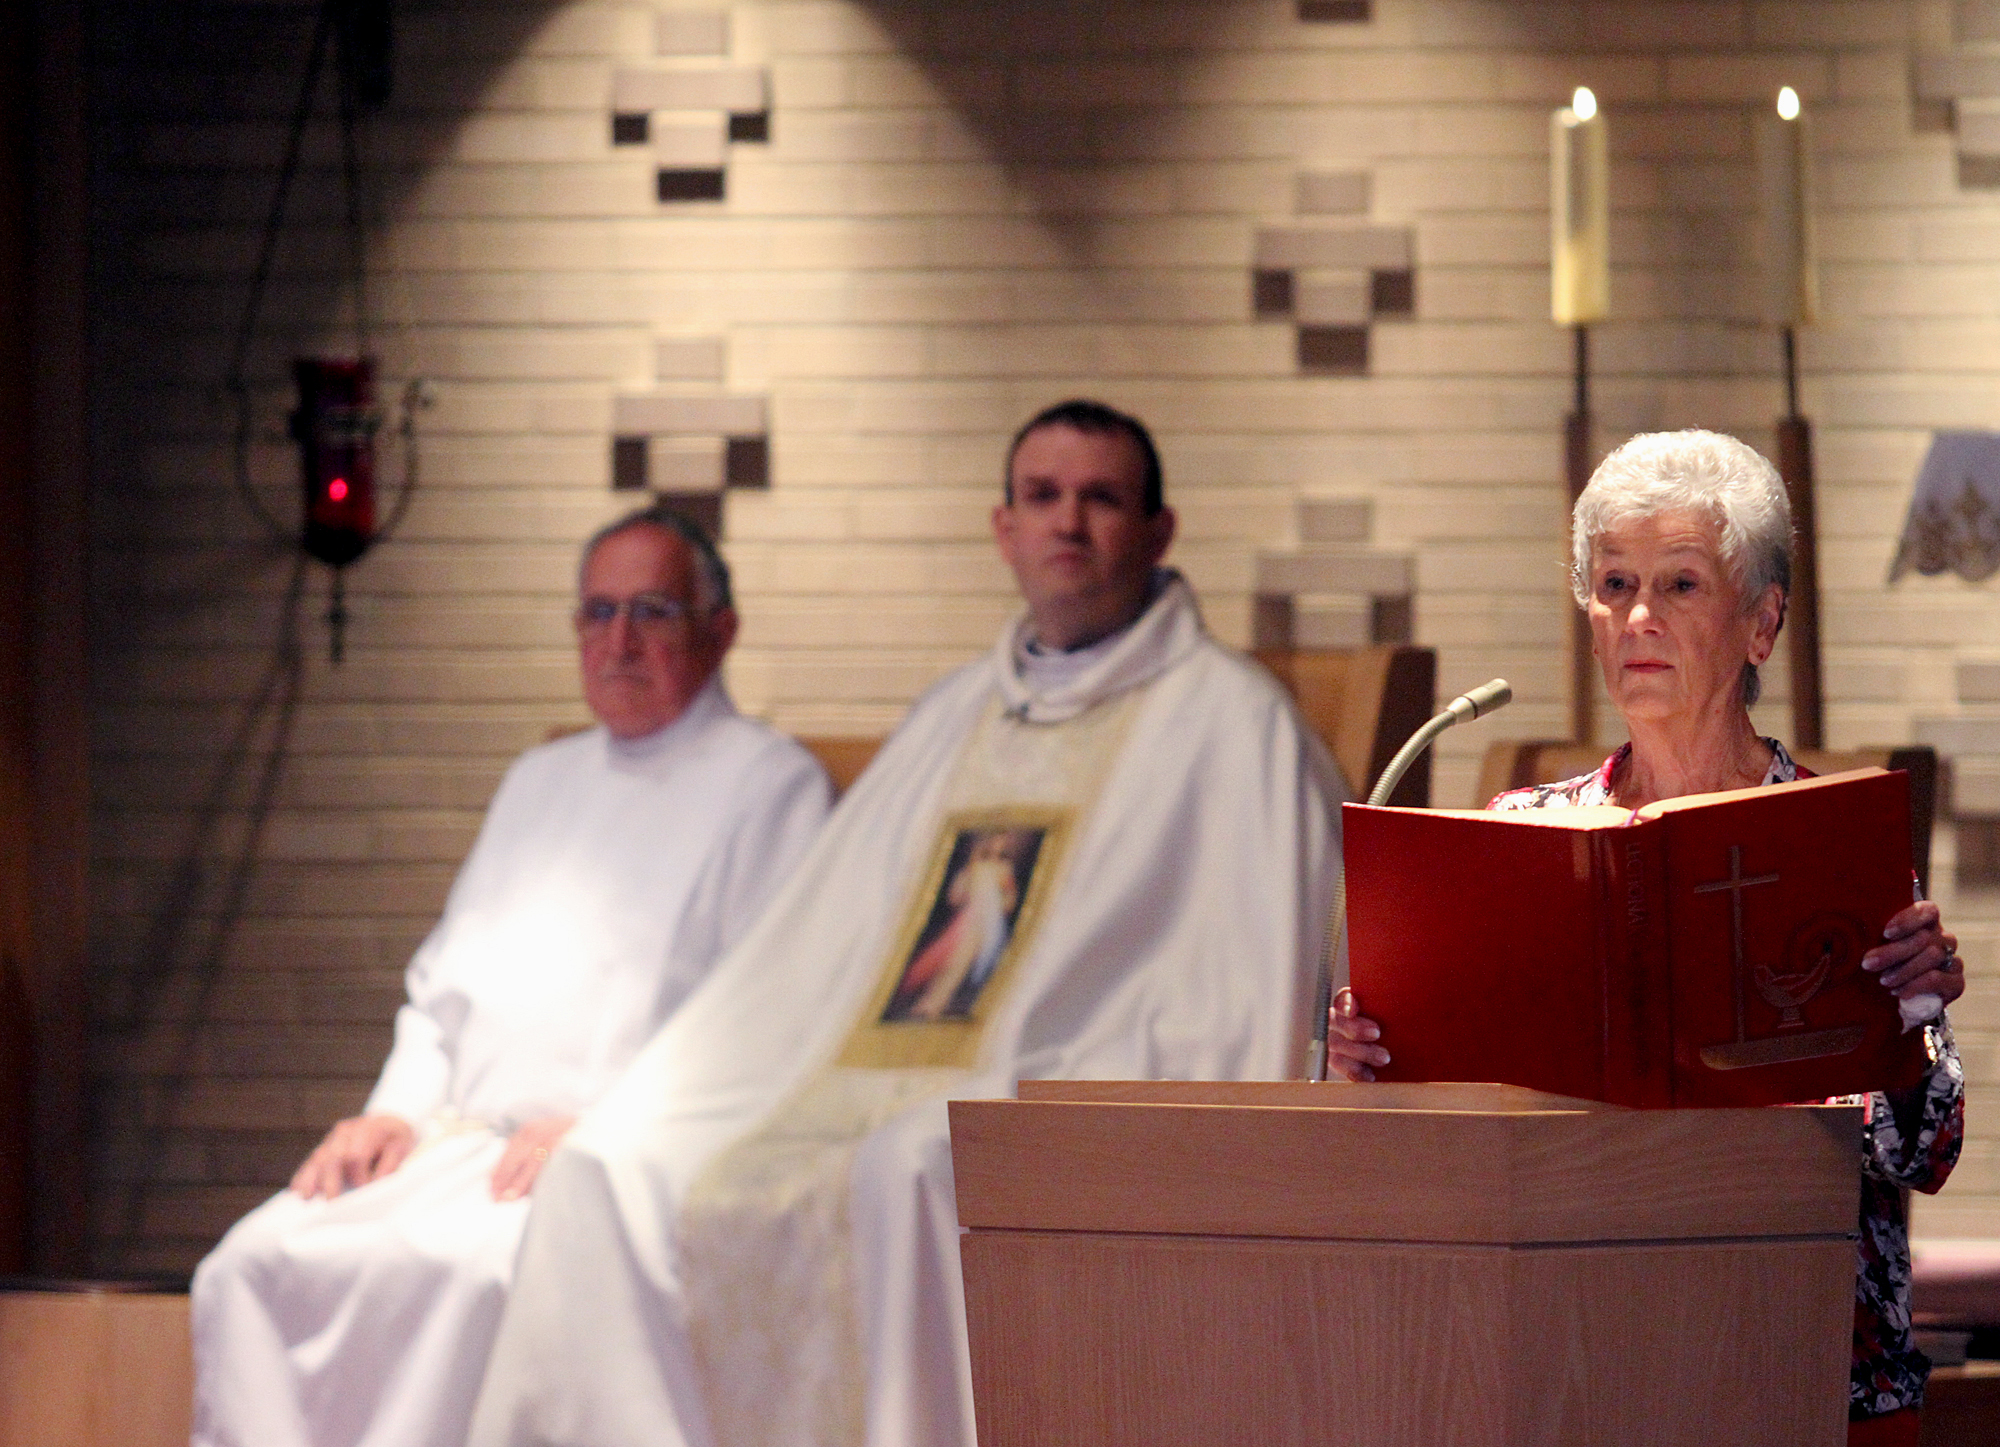 Lector Aggie Marcellino gives a reading during the special Mass at St. Adalbert Parish in Dayton Sunday, April 27, 2014, to celebrate the Canonizations of Pope John Paul II and Pope John XXIII. Listening are Ed Koth and Father Eric Bowman. (CT Photo/E.L. Hubbard)